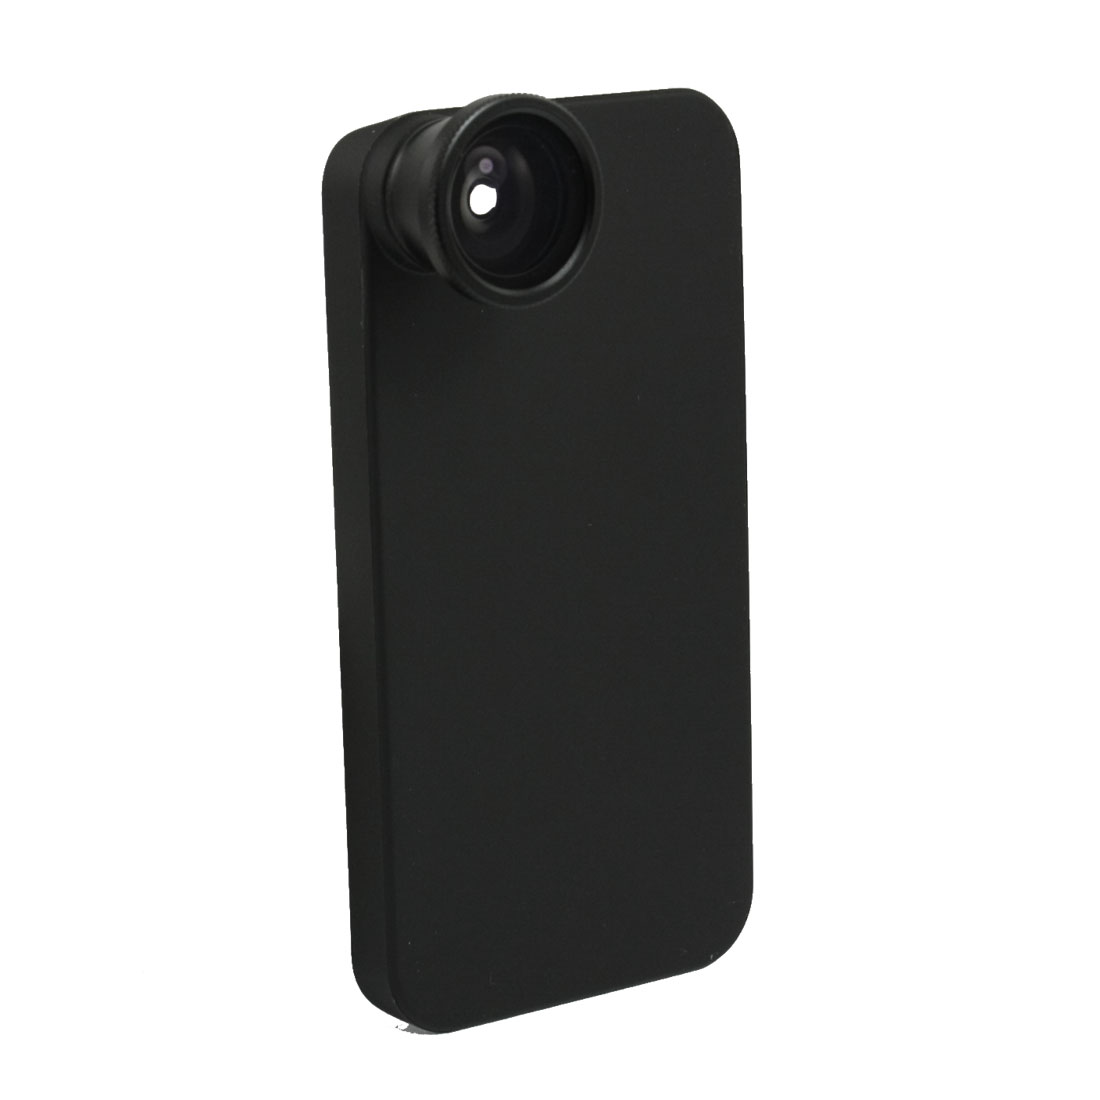 Black 0.5X Optical Telephone Camera Fisheye Lens w Back Case for iPhone 4 4G 4S 4GS